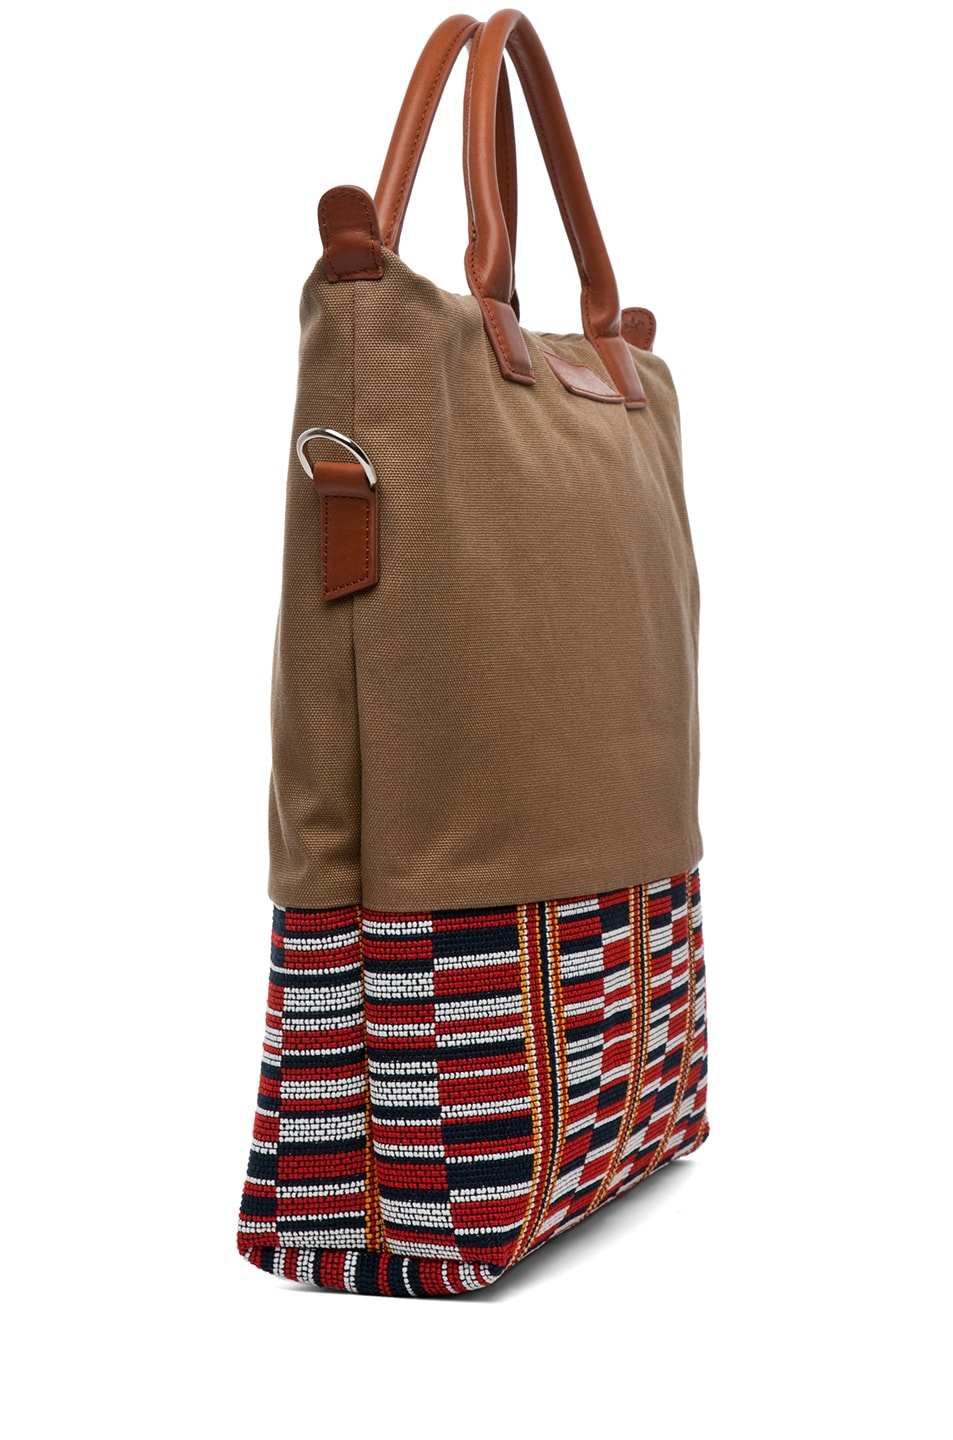 Image 3 of Want Les Essentiels De La Vie O'Hare Shopper Tote in Beige Frise